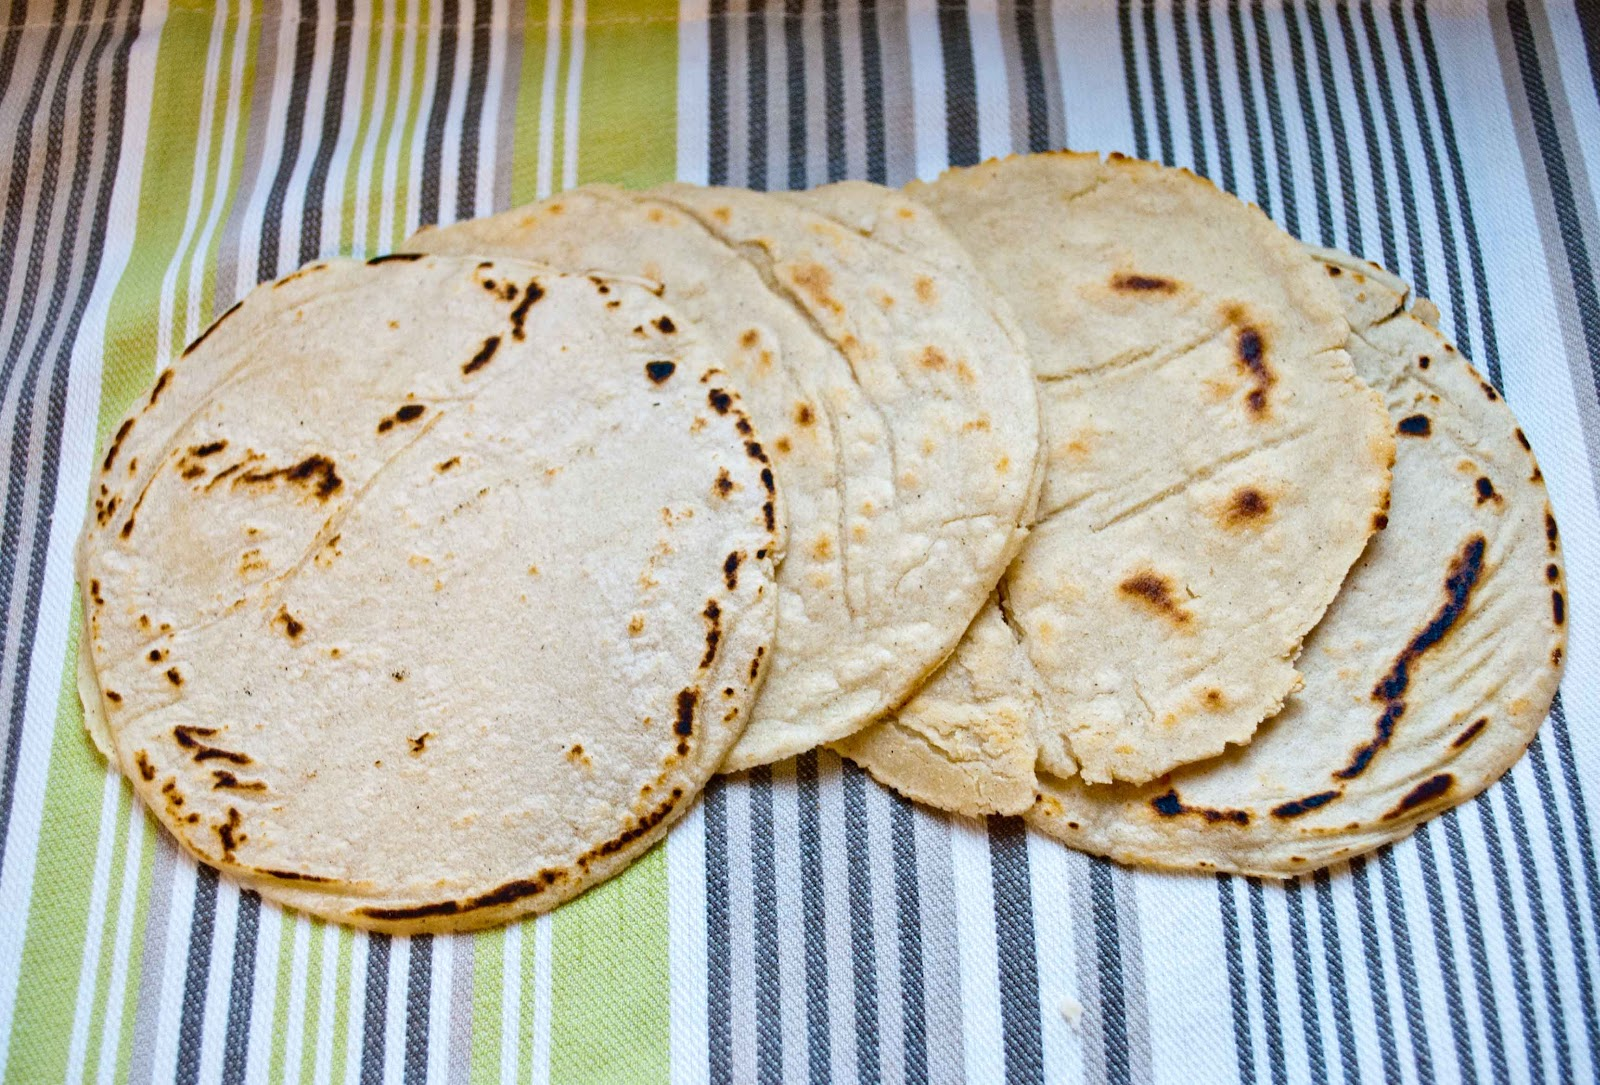 Homemade Corn Tortillas Homemade Corn Tortillas new images